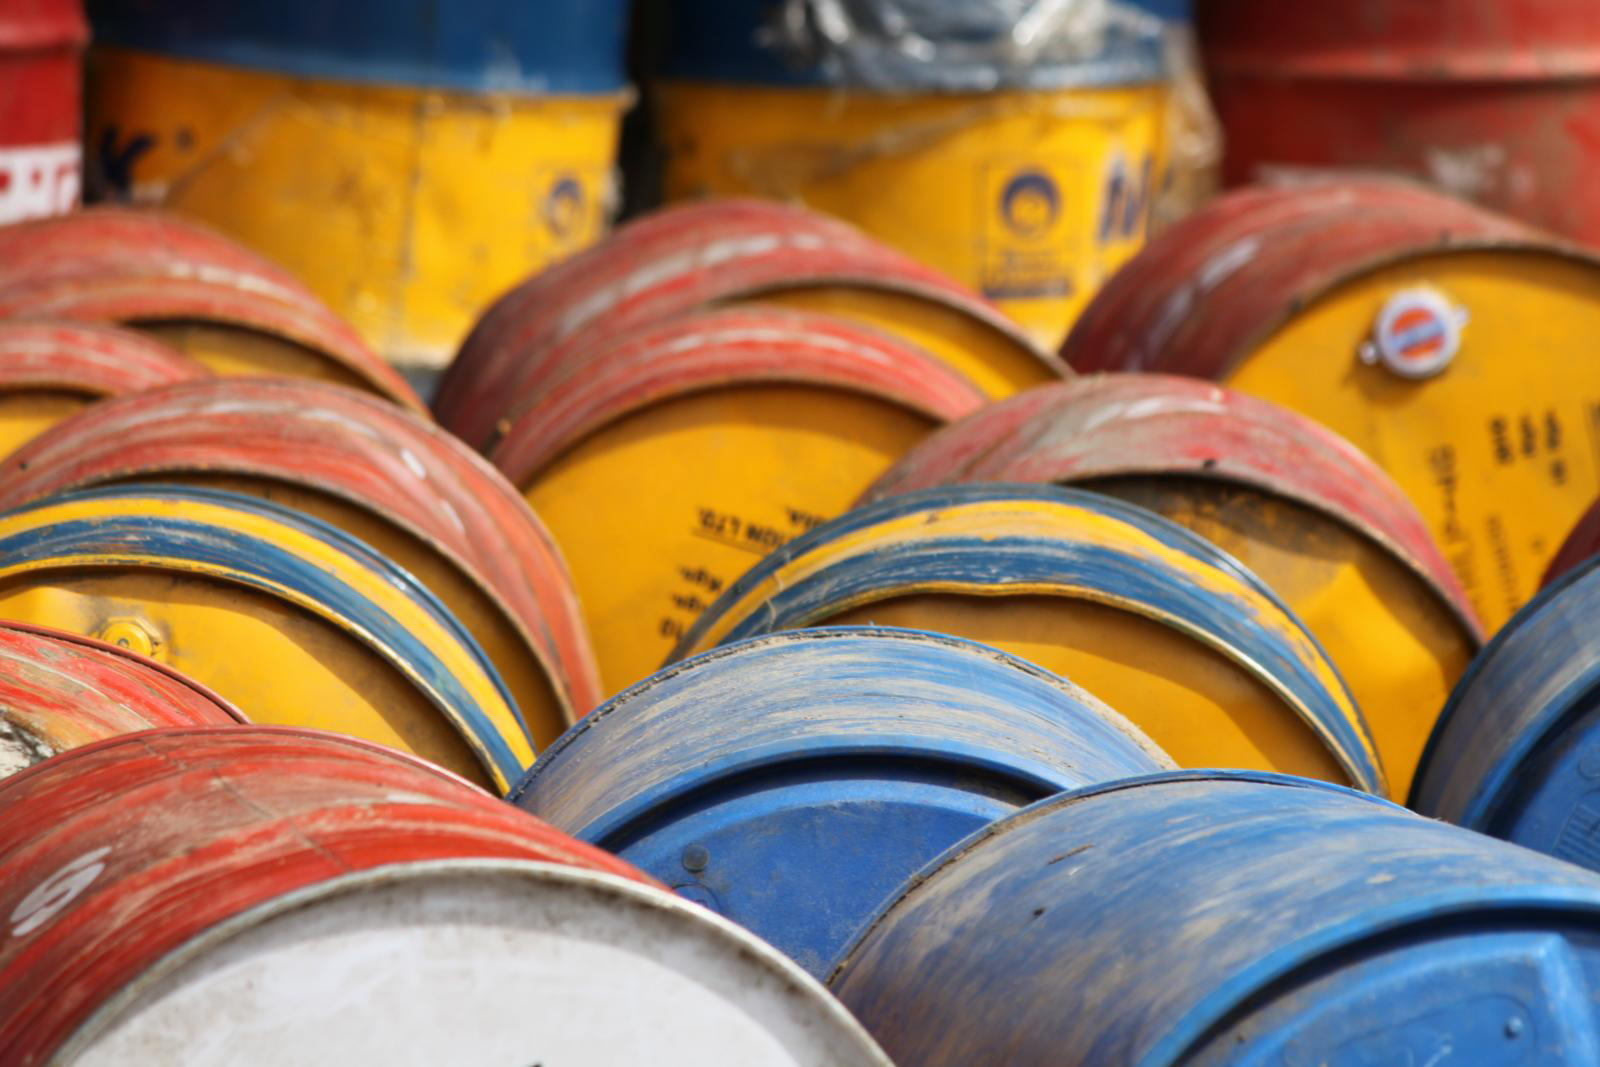 web_photo_oil_drums_101016